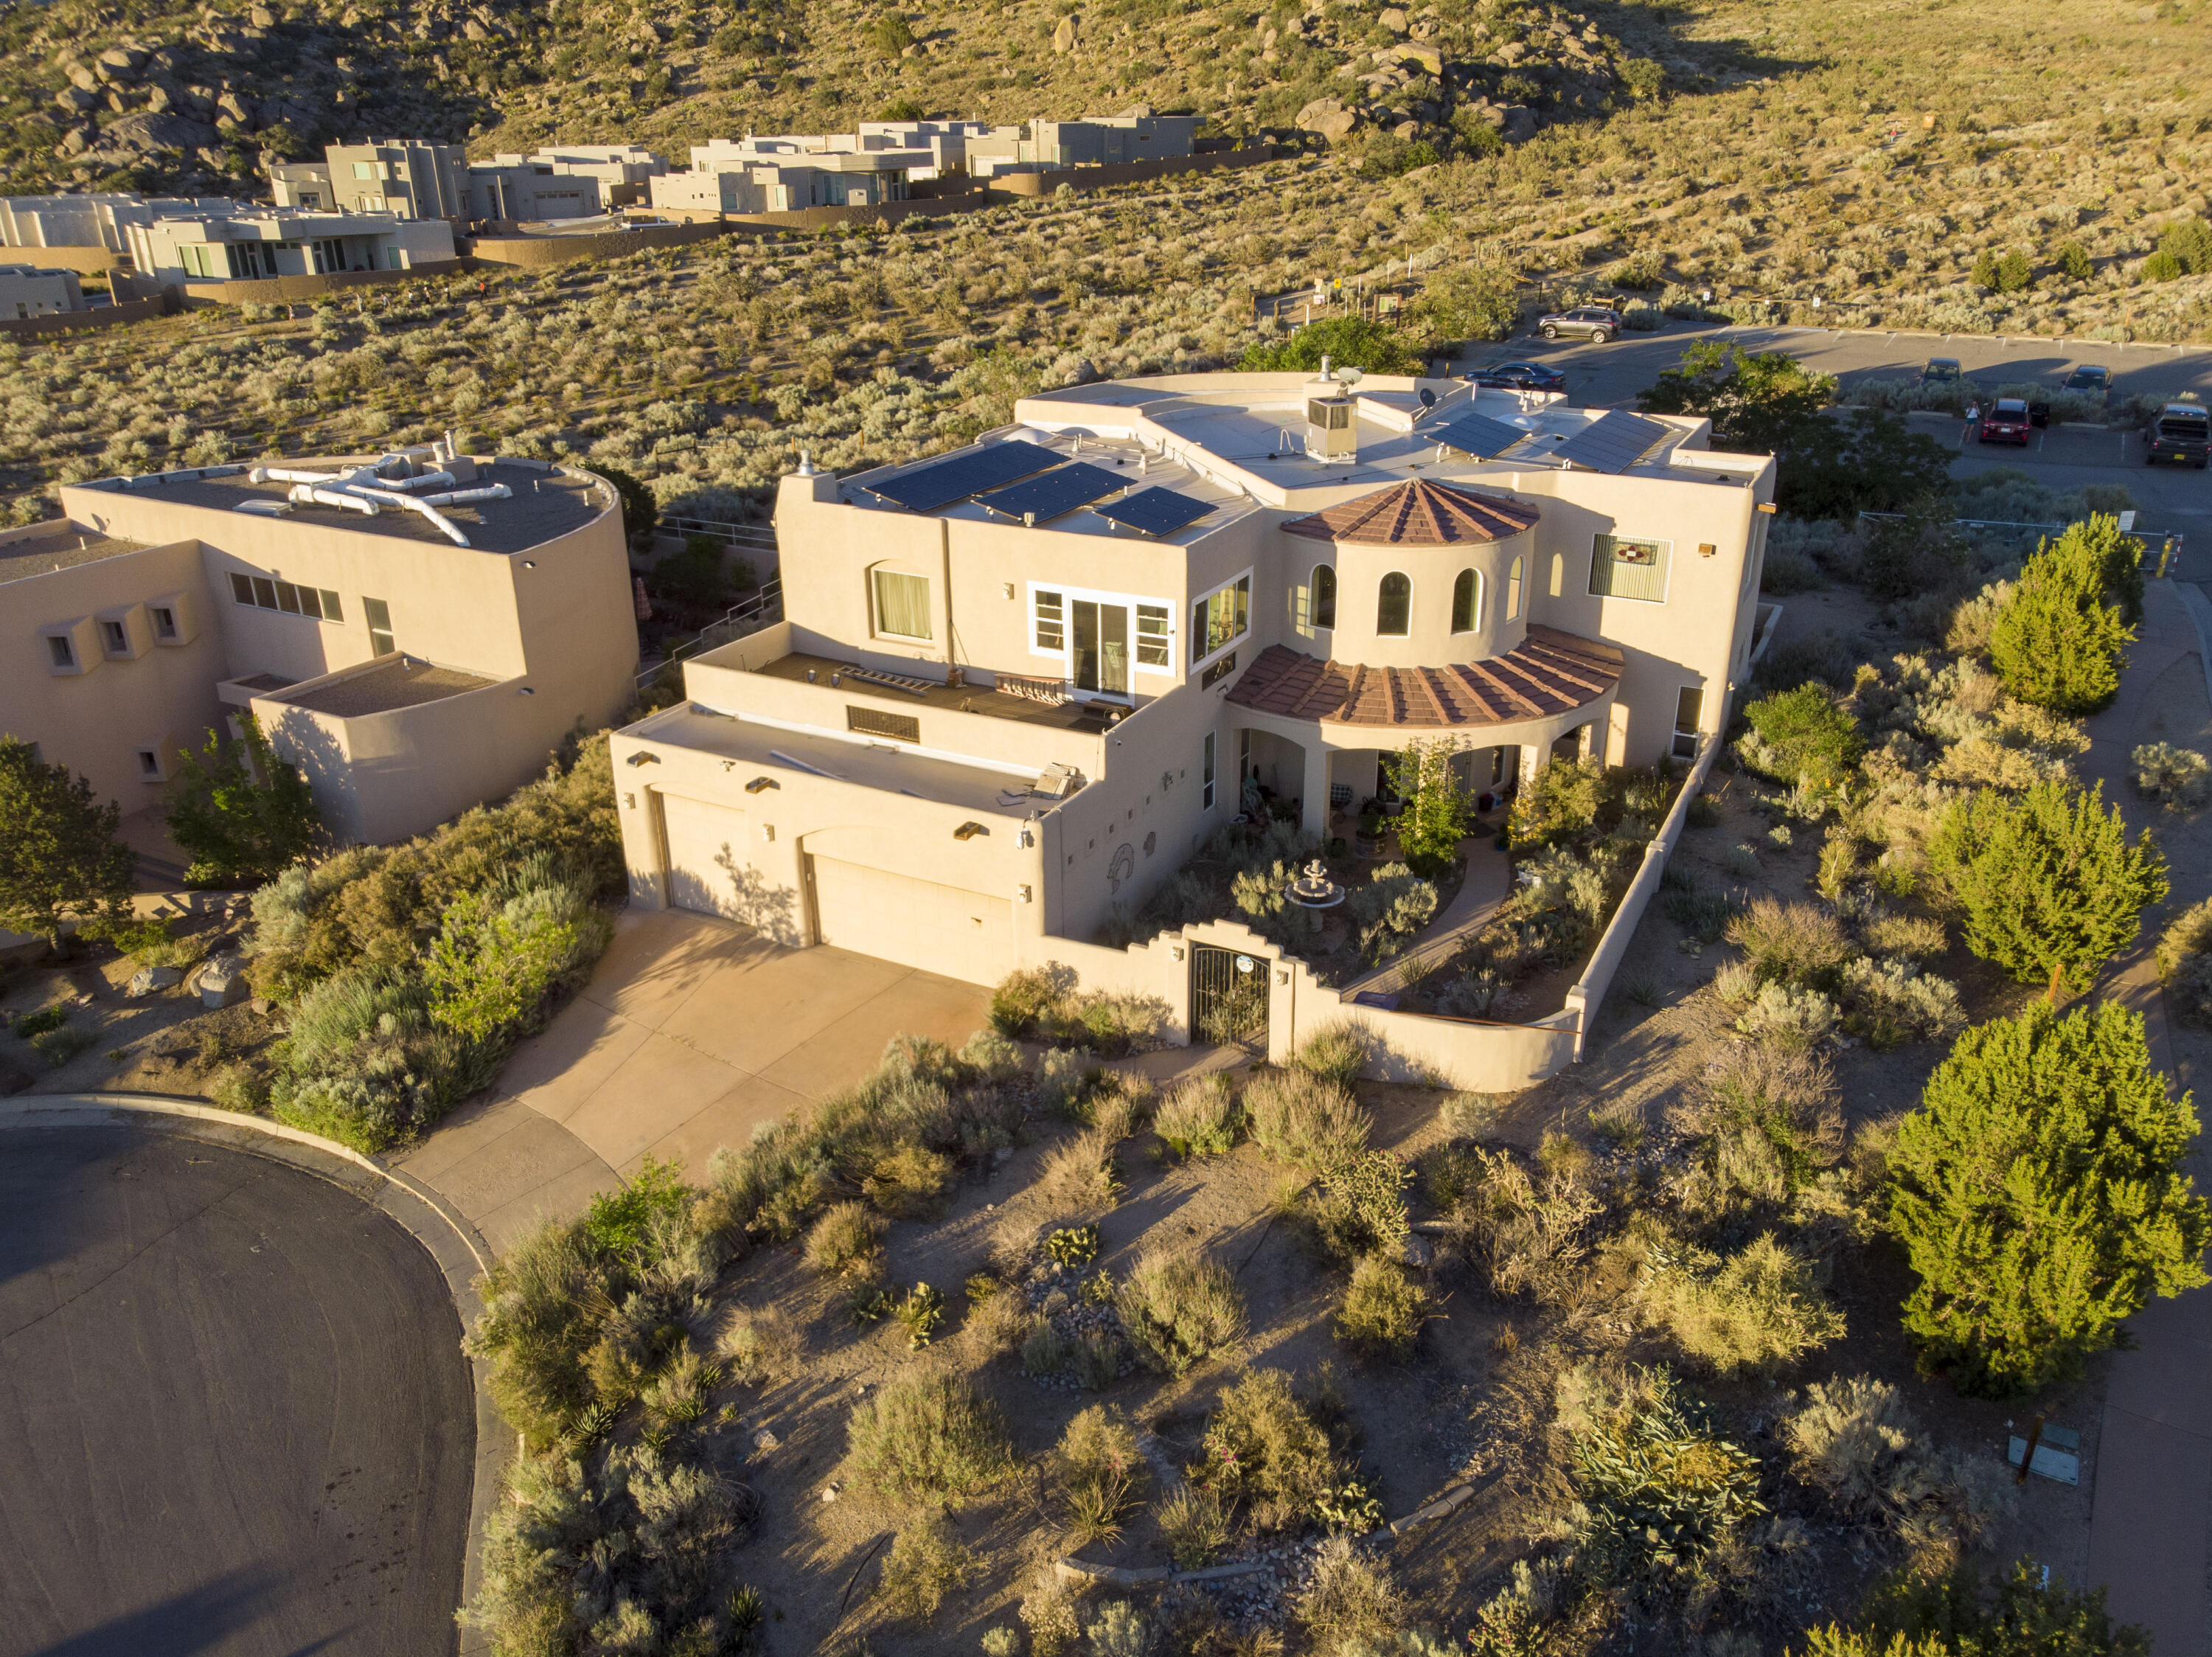 Rare opportunity to own a custom-built luxury home, just steps from the Embudito Trail and the foothills trails system - in the desirable community of High Desert.  This home features almost 900 square feet of balconies so that the incredible views of the Sandia mountains and the city lights can be enjoyed to their maximum potential.  Few properties in the city combine the natural beauty of the foothills and convenience of nearby shops and restaurants.  This nearly 5000 square foot home features six bedrooms, five bathrooms, a large finished basement, paid for solar panels, and an elevator.  This home has also been recently updated with a new roof, 3 new refrigerated air units, and complete re-stucco (all in 2018).